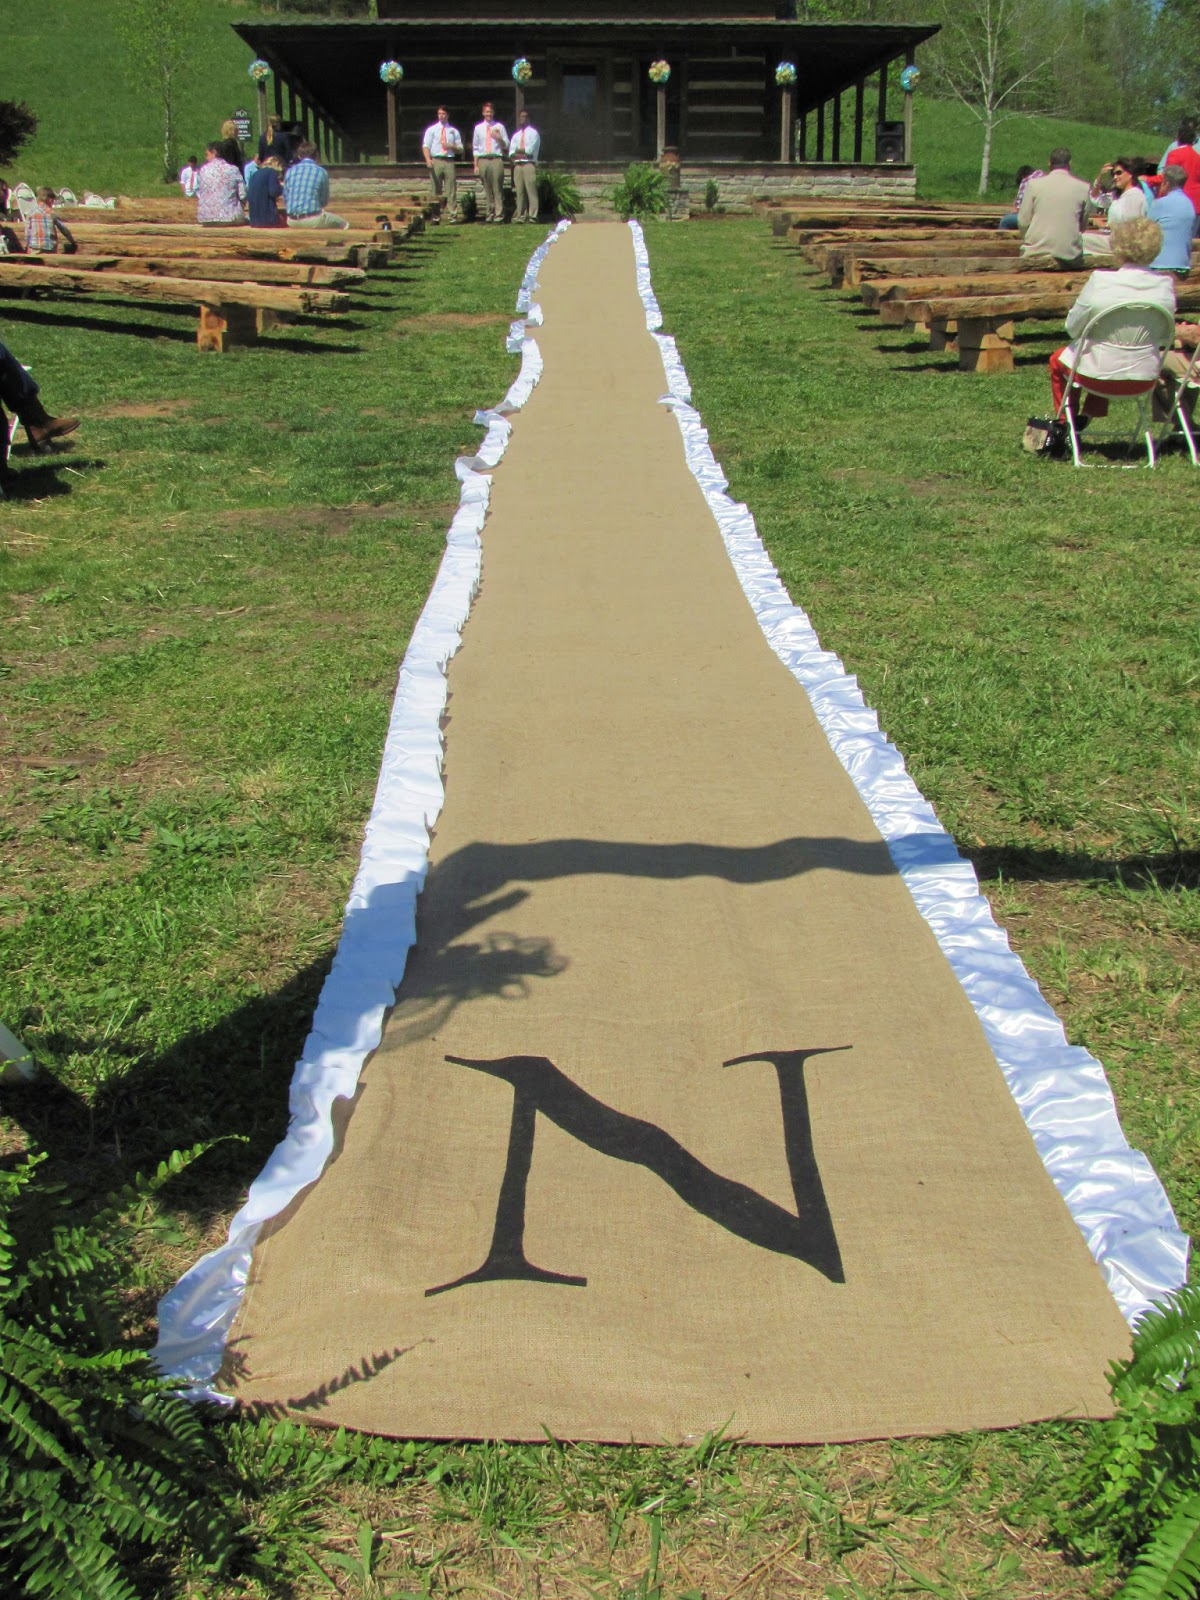 burlap and satin aisle runner i done for the wedding i love how it turned out it was very time consuming but the finished project was so worth it